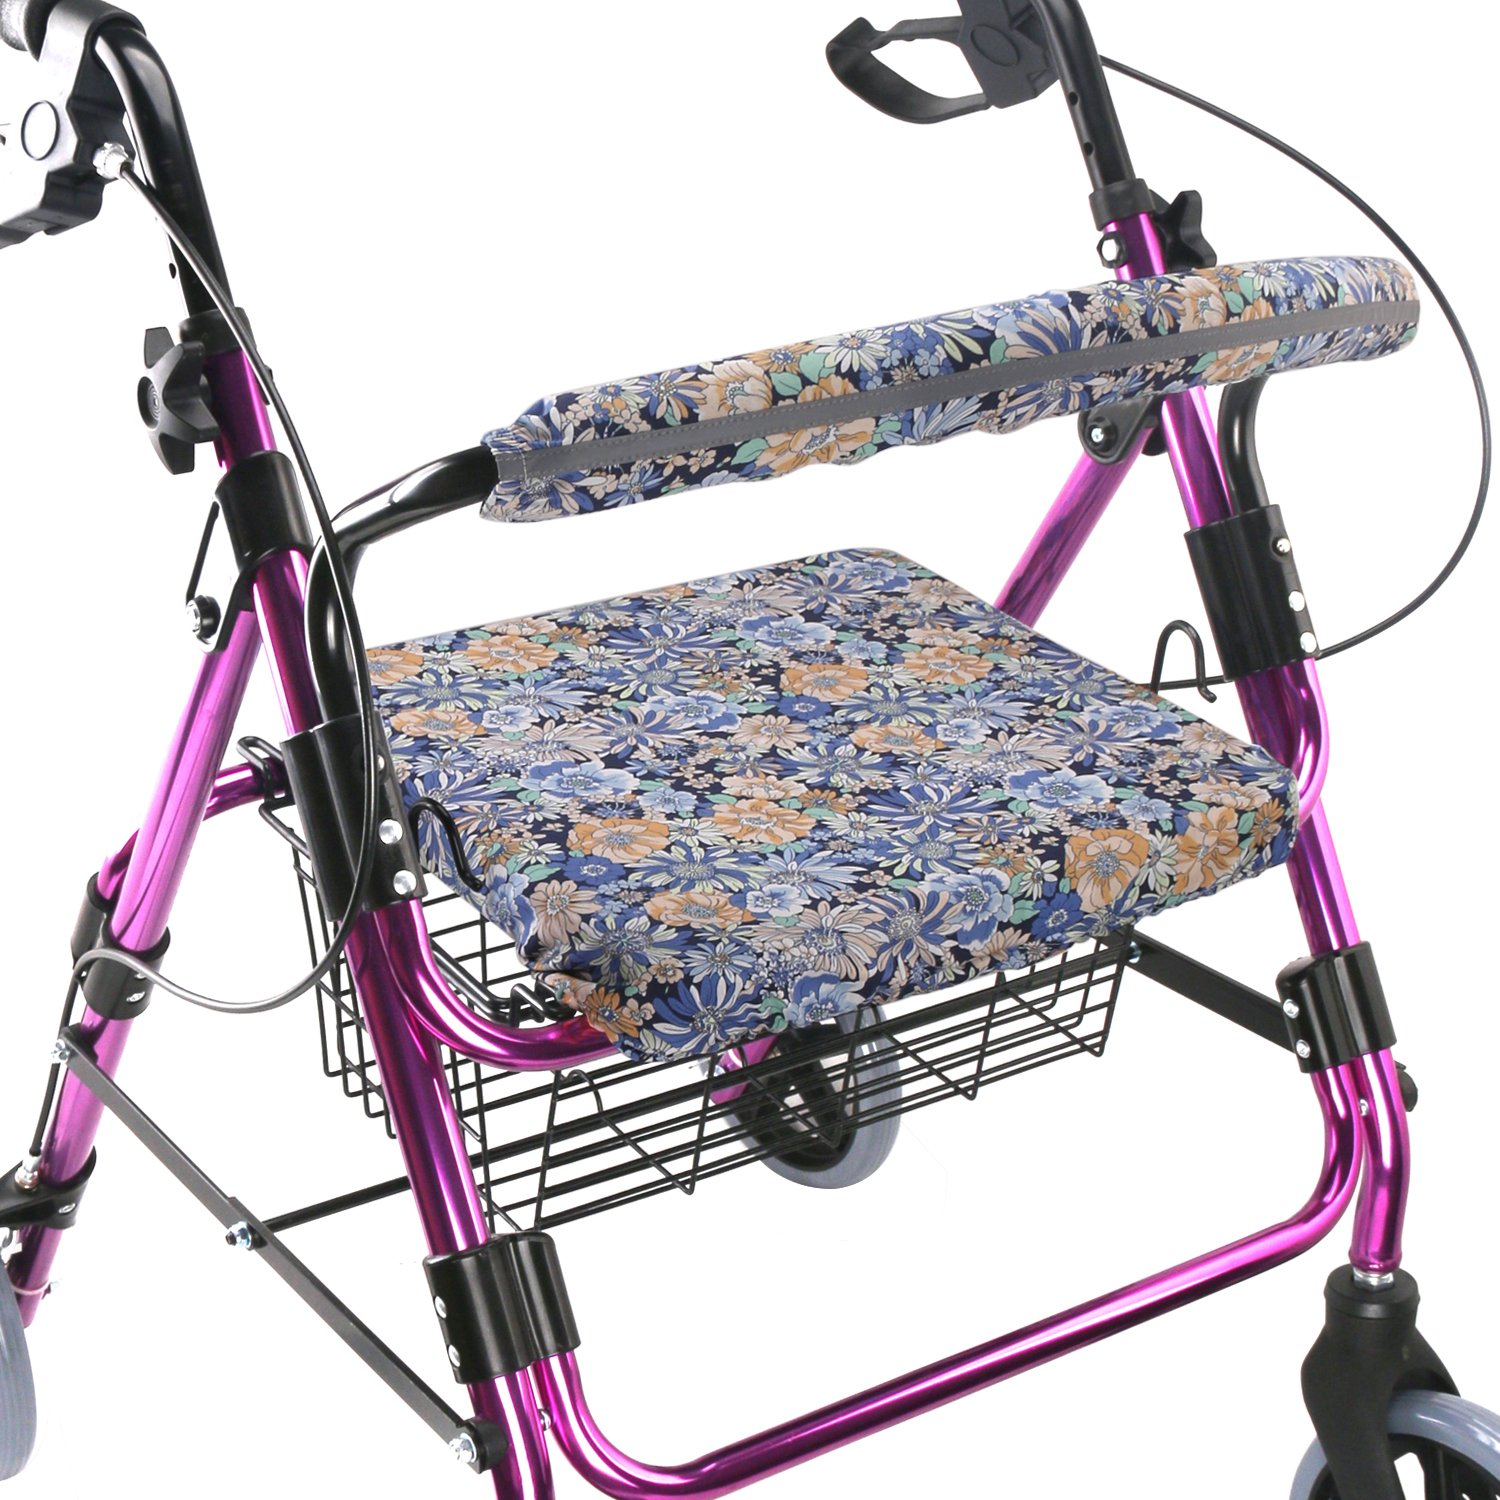 Walker Seat Cover Rollator Walker Seat and Backrest Covers Vibrant Walker Cover One Size Multiple Colors (CB1881)